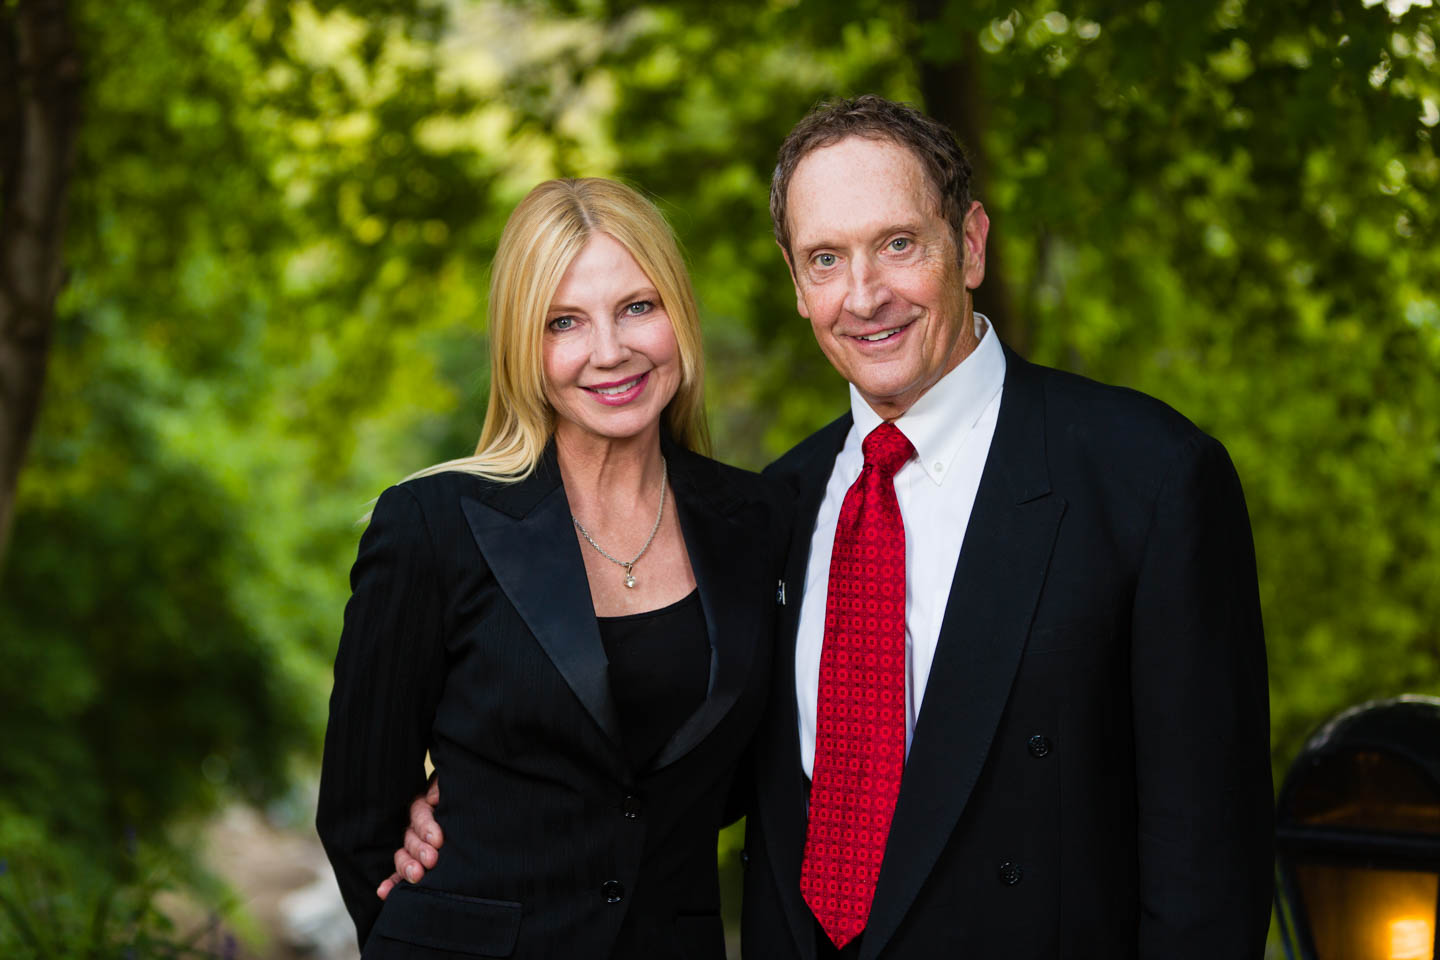 Plastic surgeon and wife